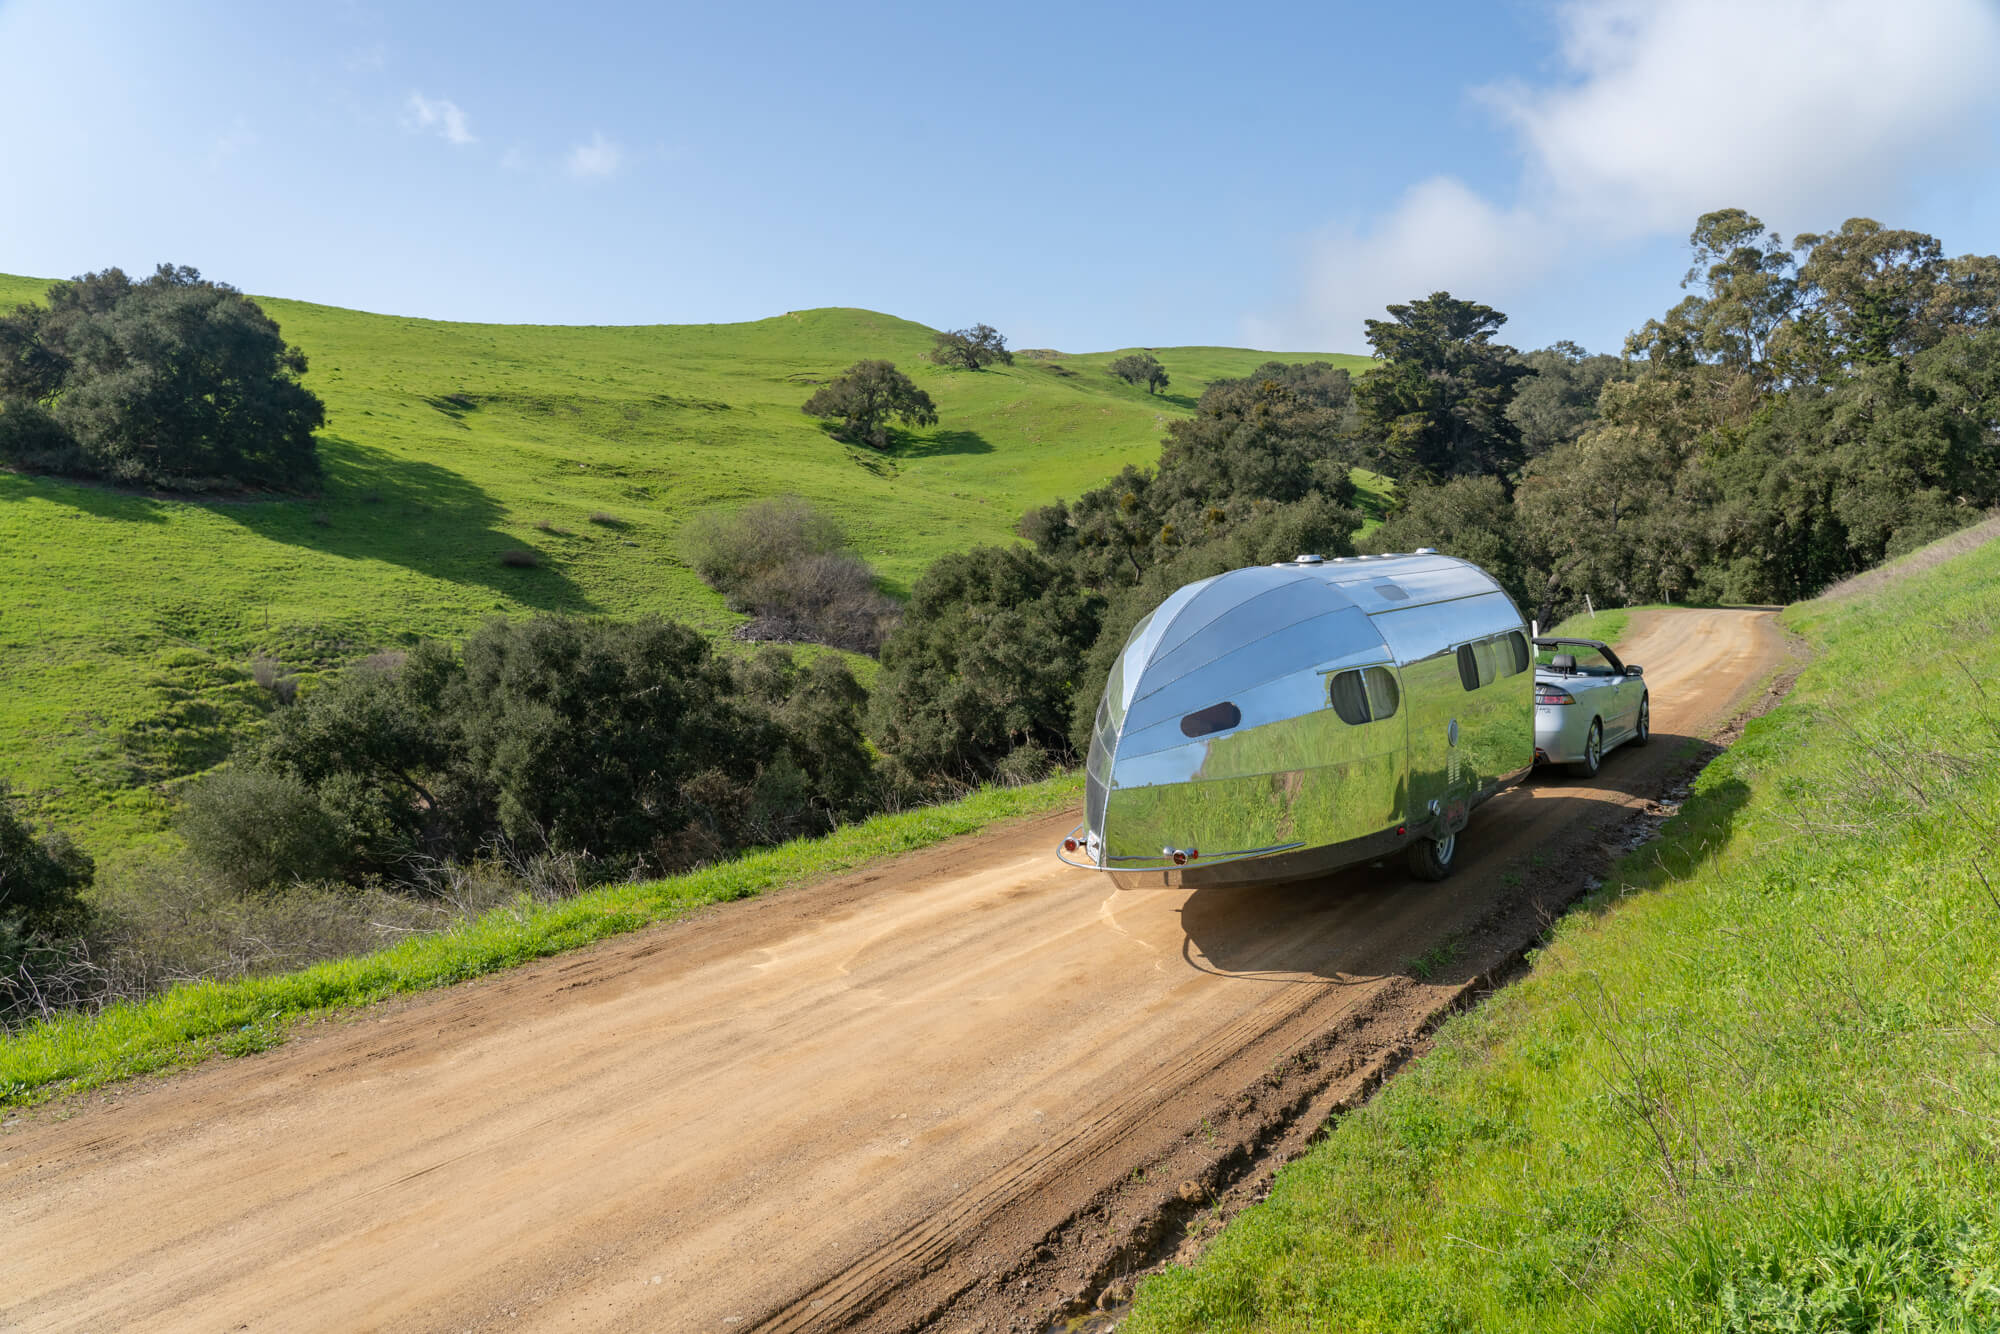 We found the Bowlus Road Chief through an article in the Wall Street Journal.